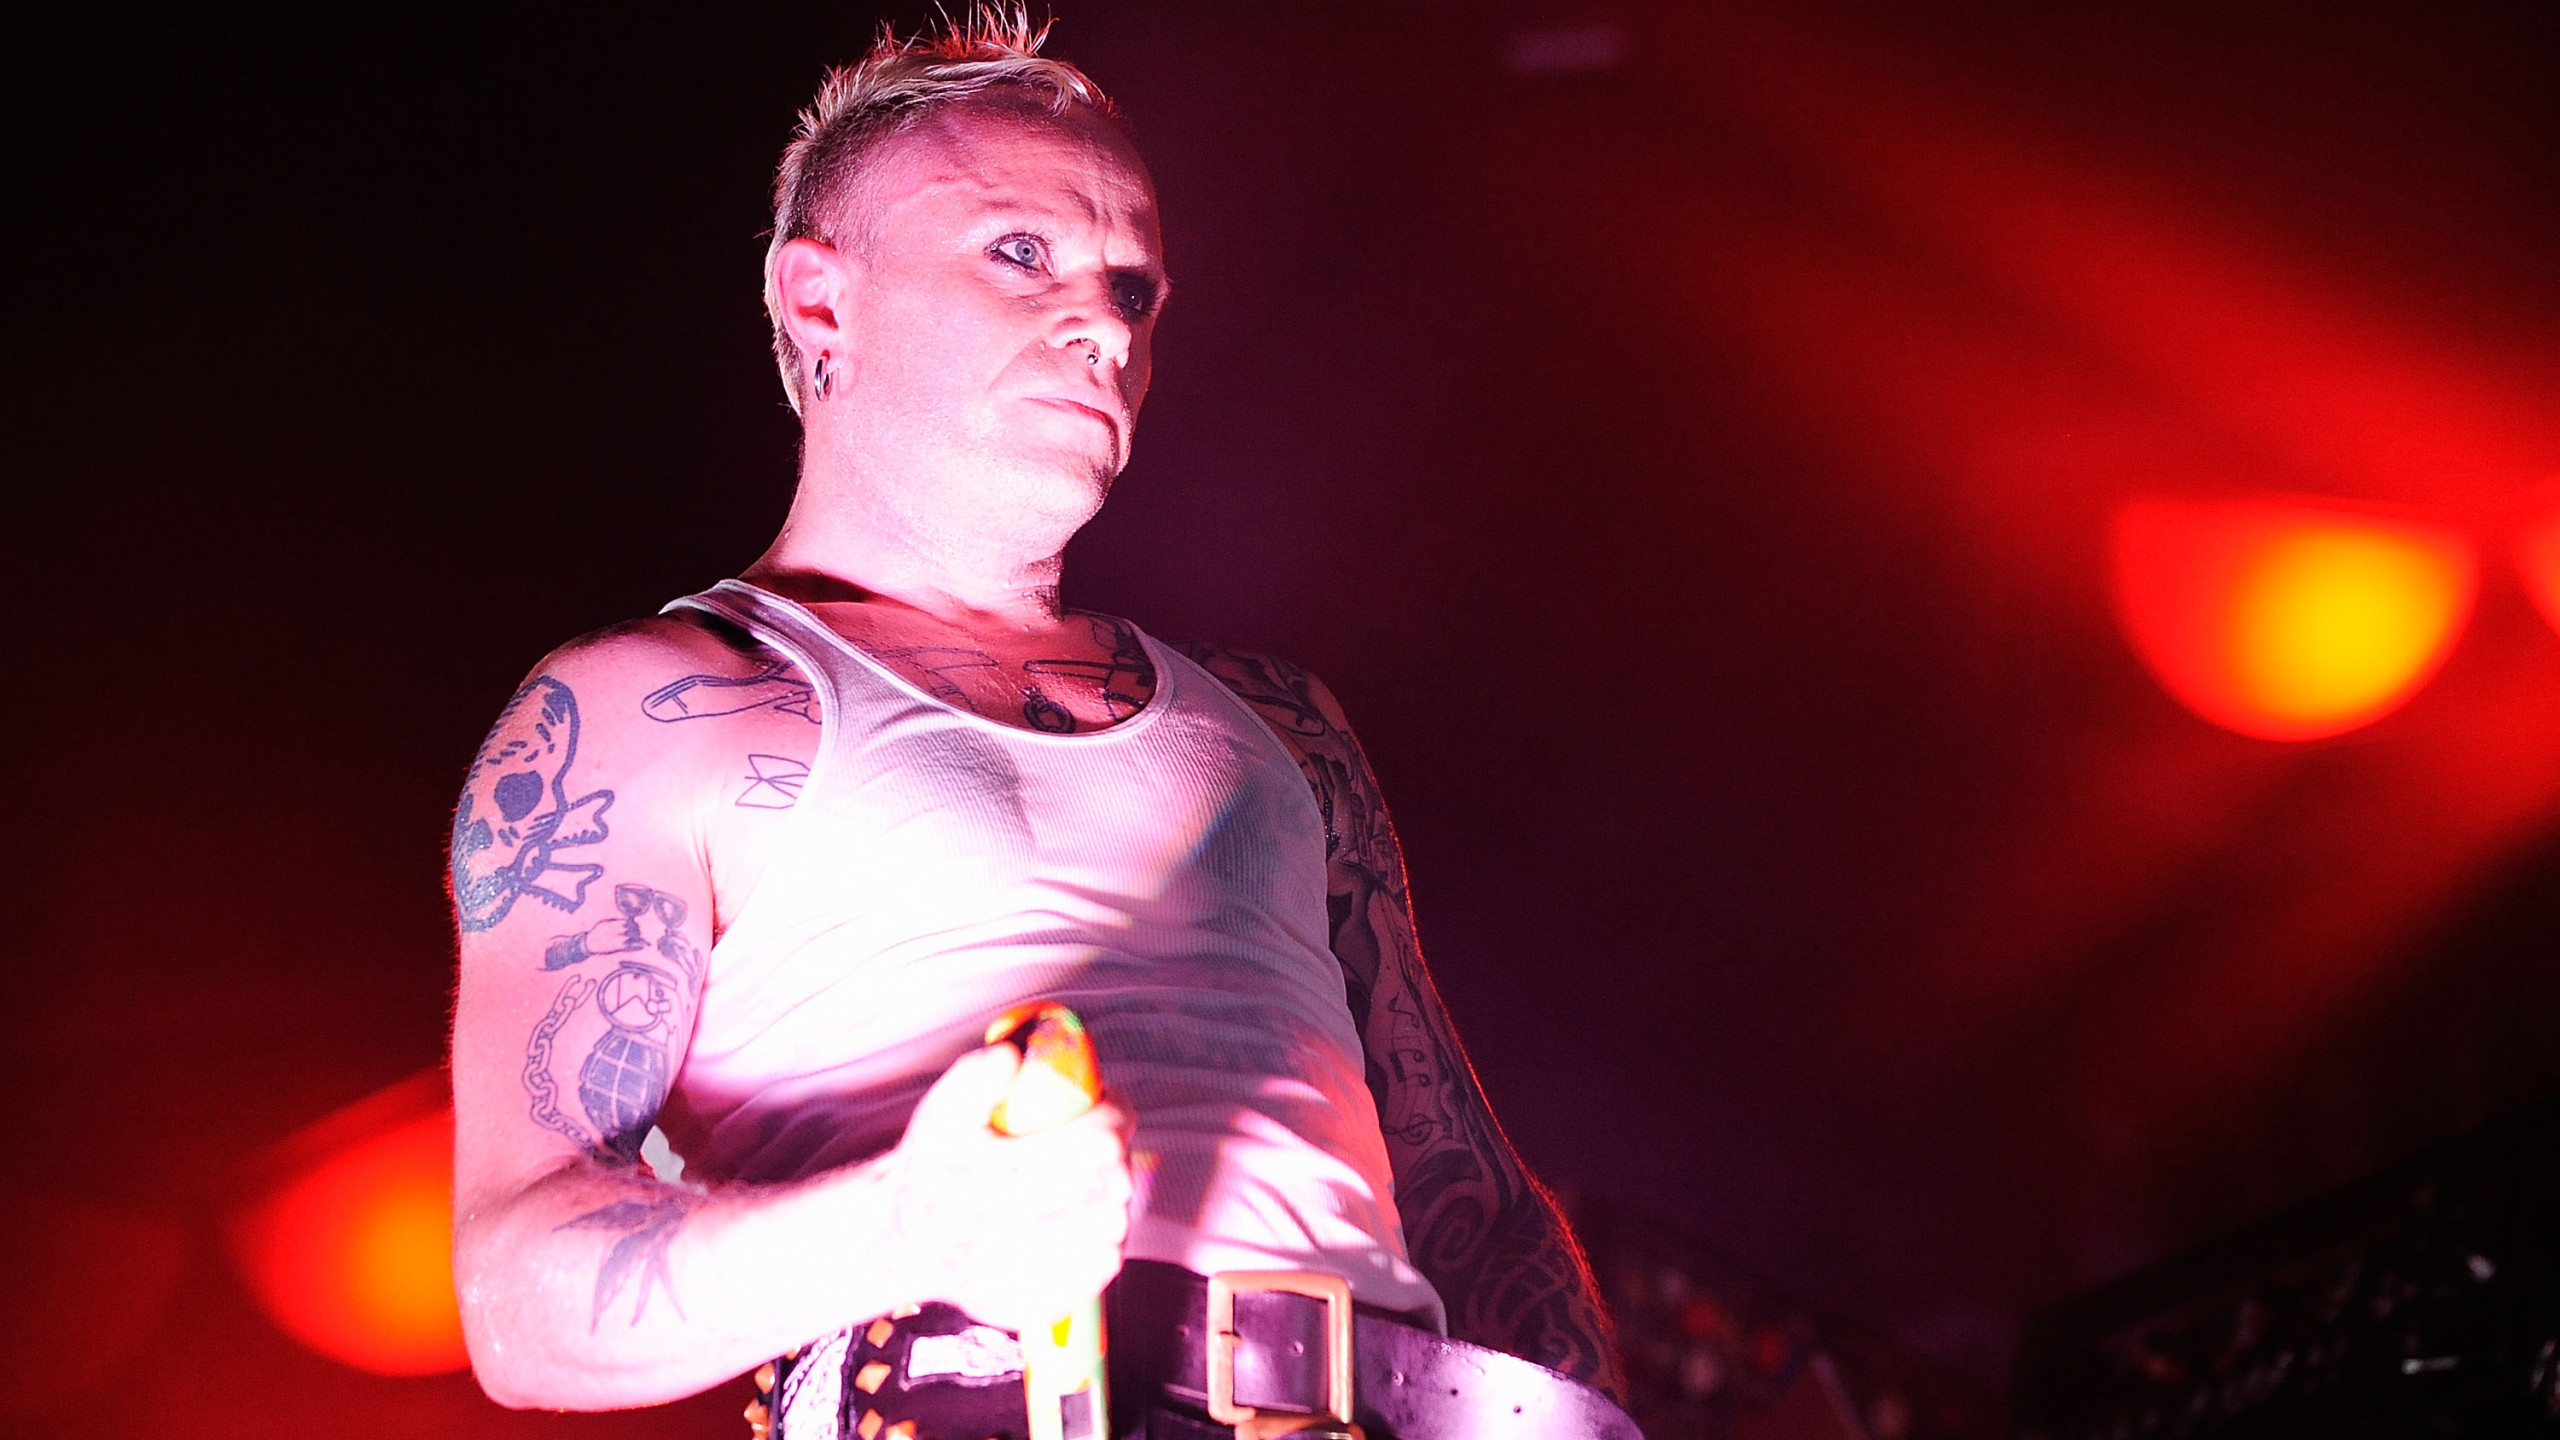 the-prodigy-tribute-to-keith-flint